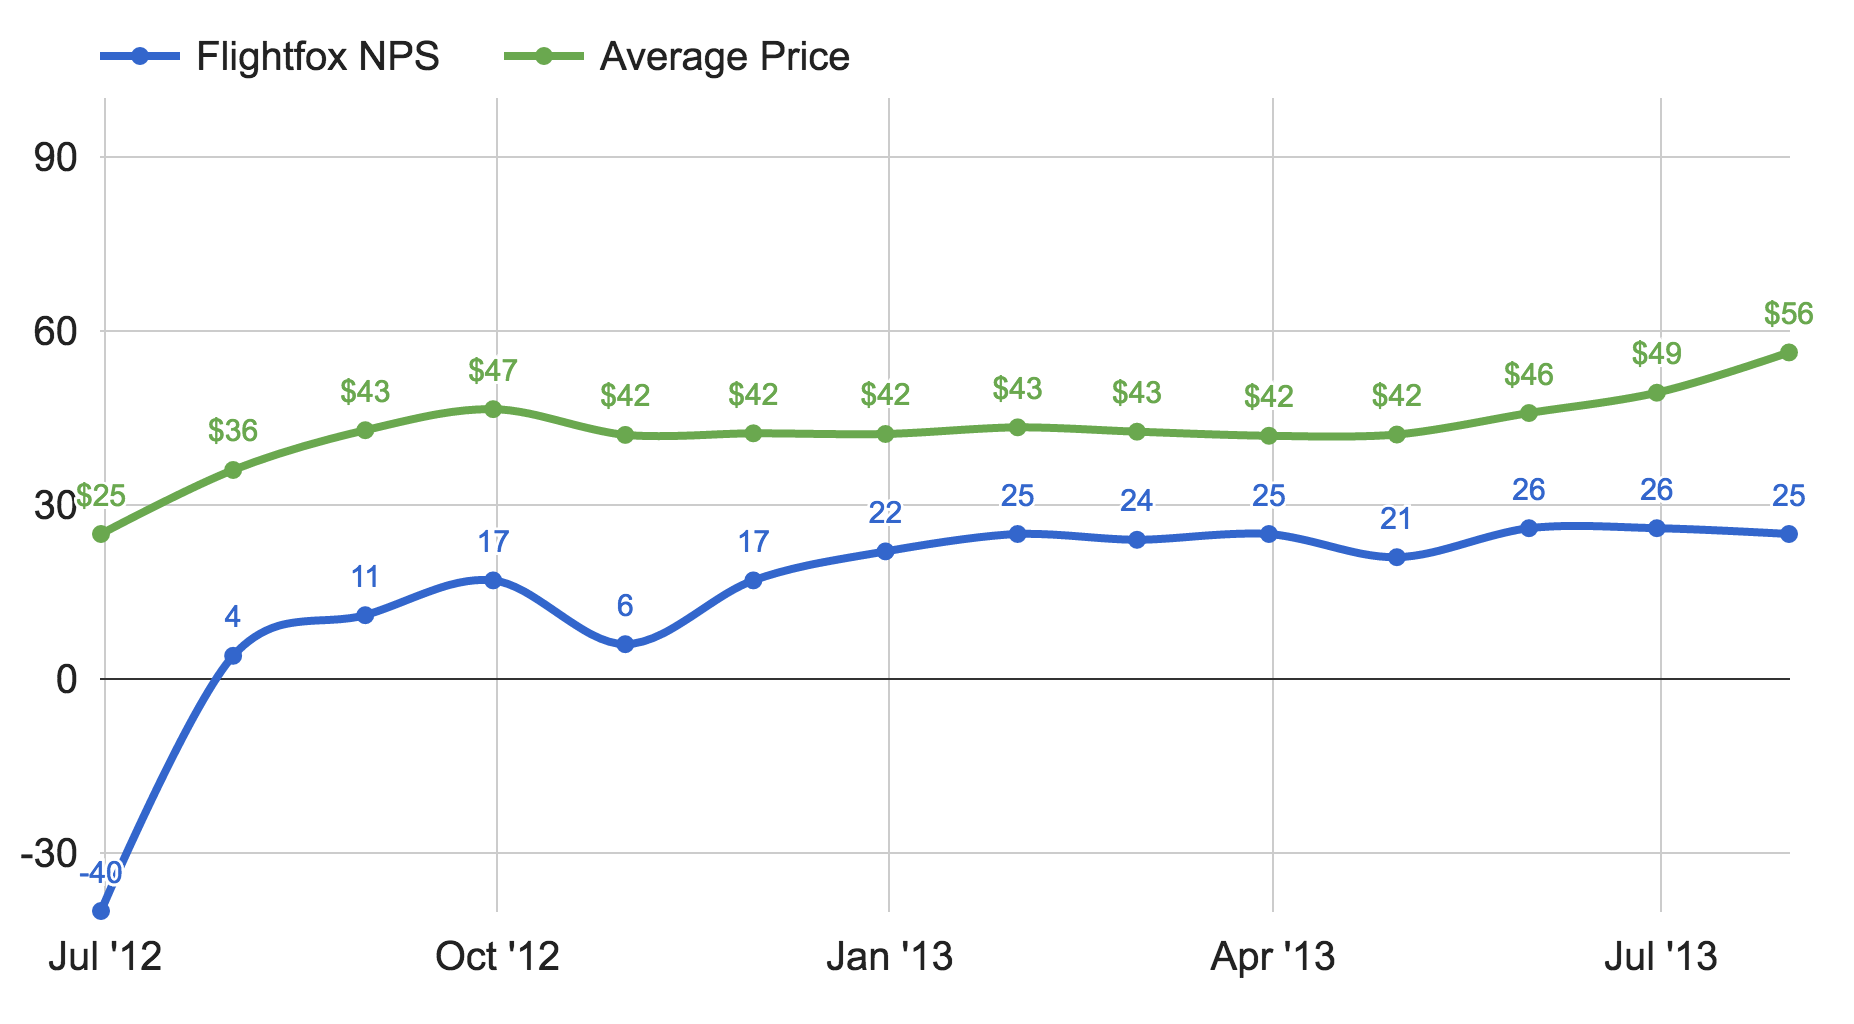 Flightfox NPS and Average Price